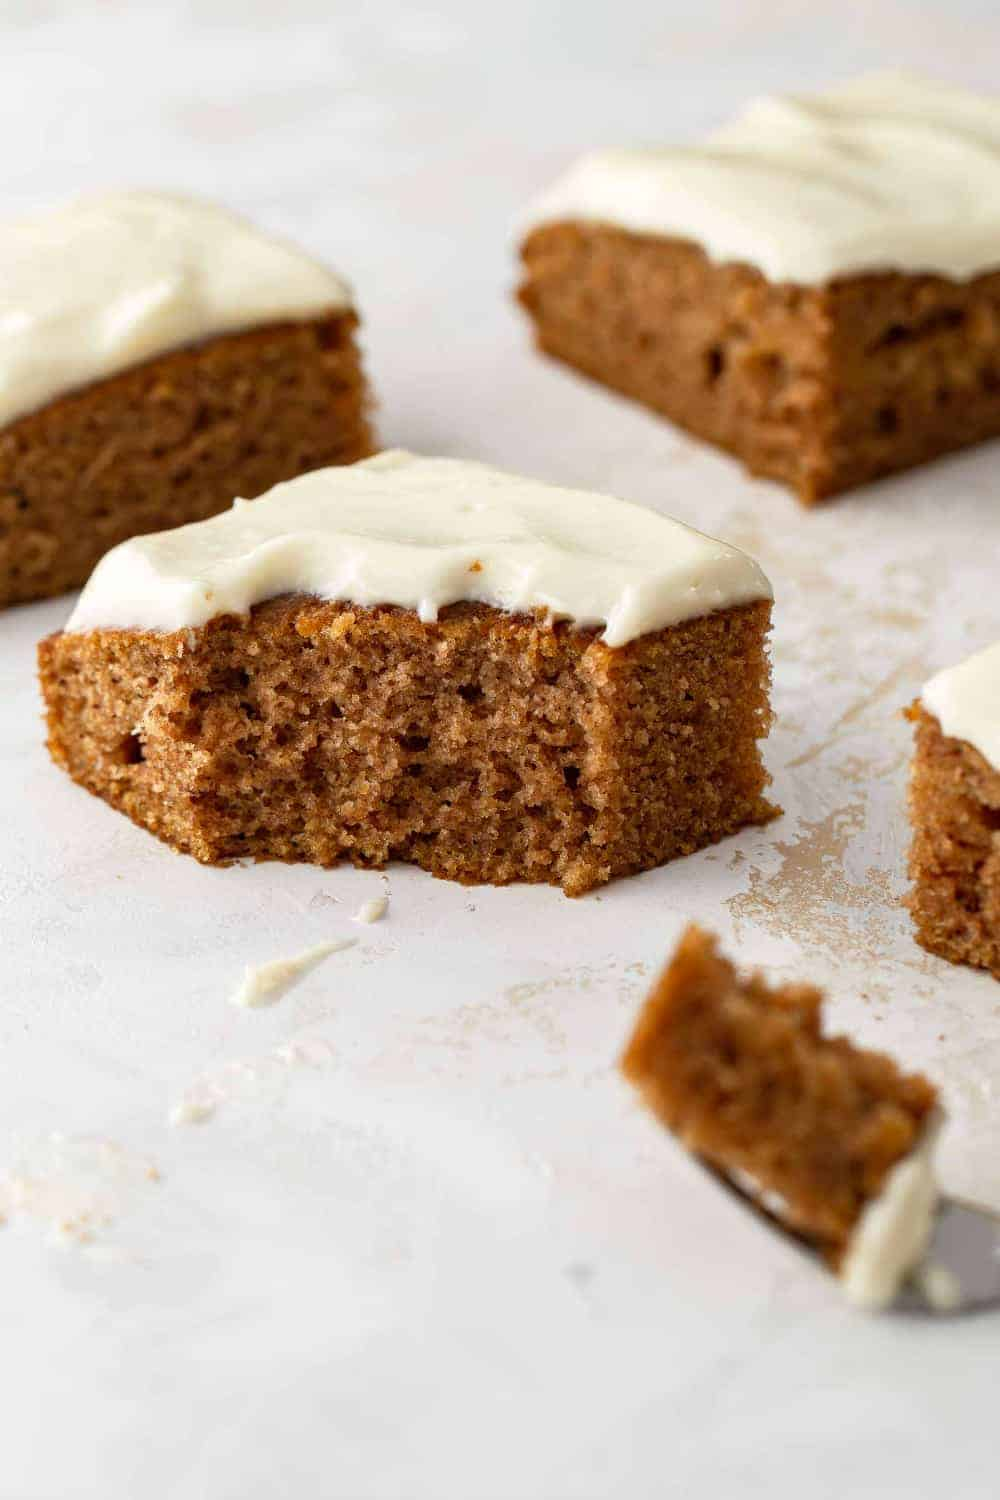 Side view of a pumpkin bar with cream cheese frosting with a bite taken out of it